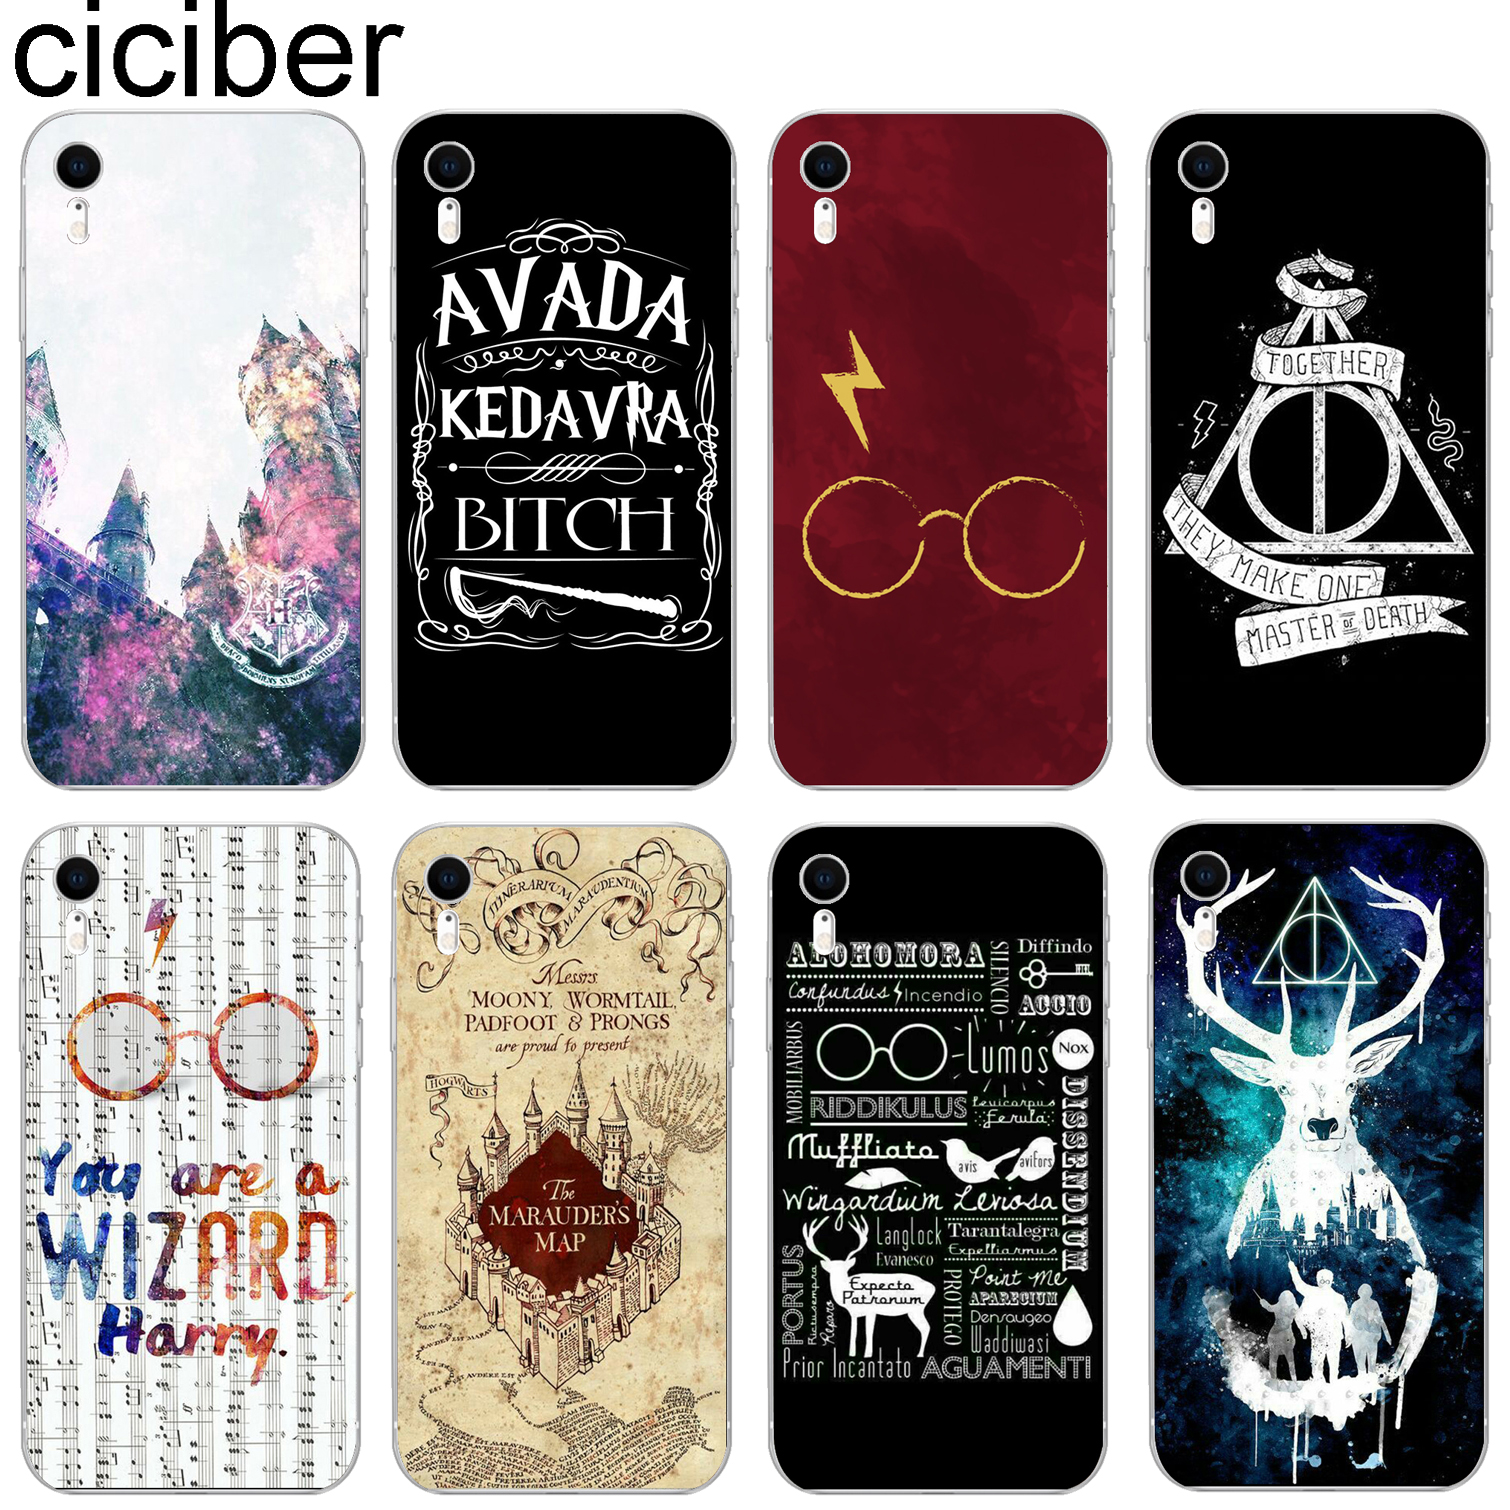 ciciber Harry Potter Cute Pattern Design Soft Silicone Phone Cases Cover for Iphone 8 7 6 6S Plus 5S SE X XR XS MAX Coque Fundas Переносные часы